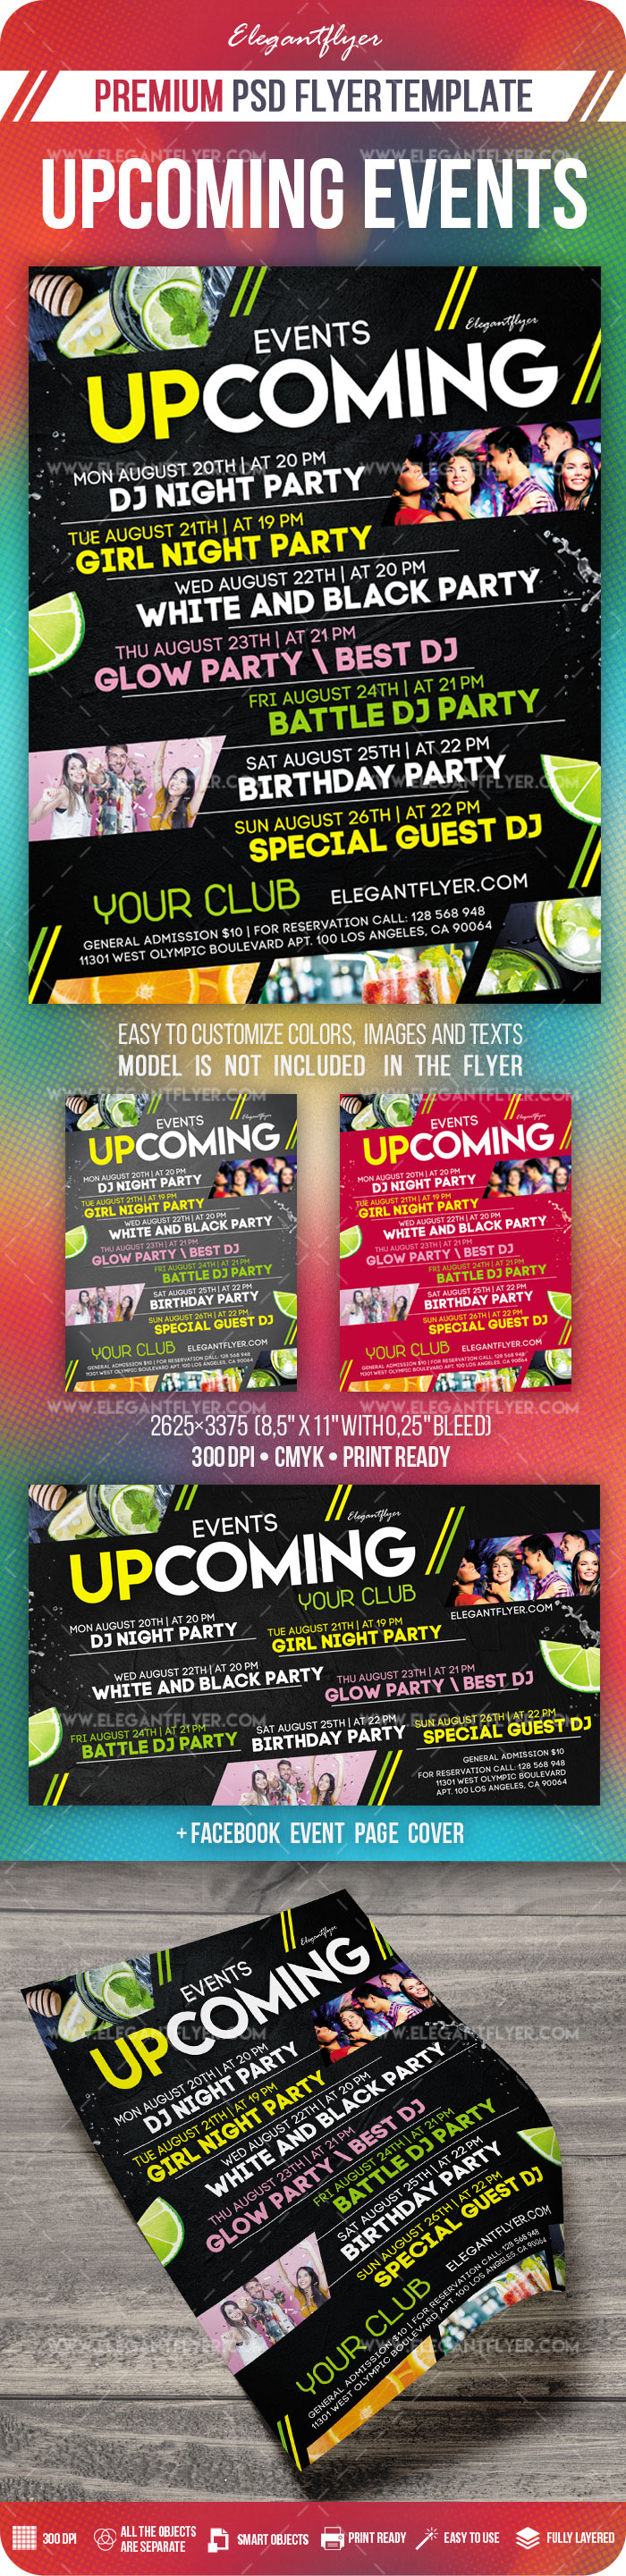 Upcoming Events – Flyer PSD Template + Facebook Cover